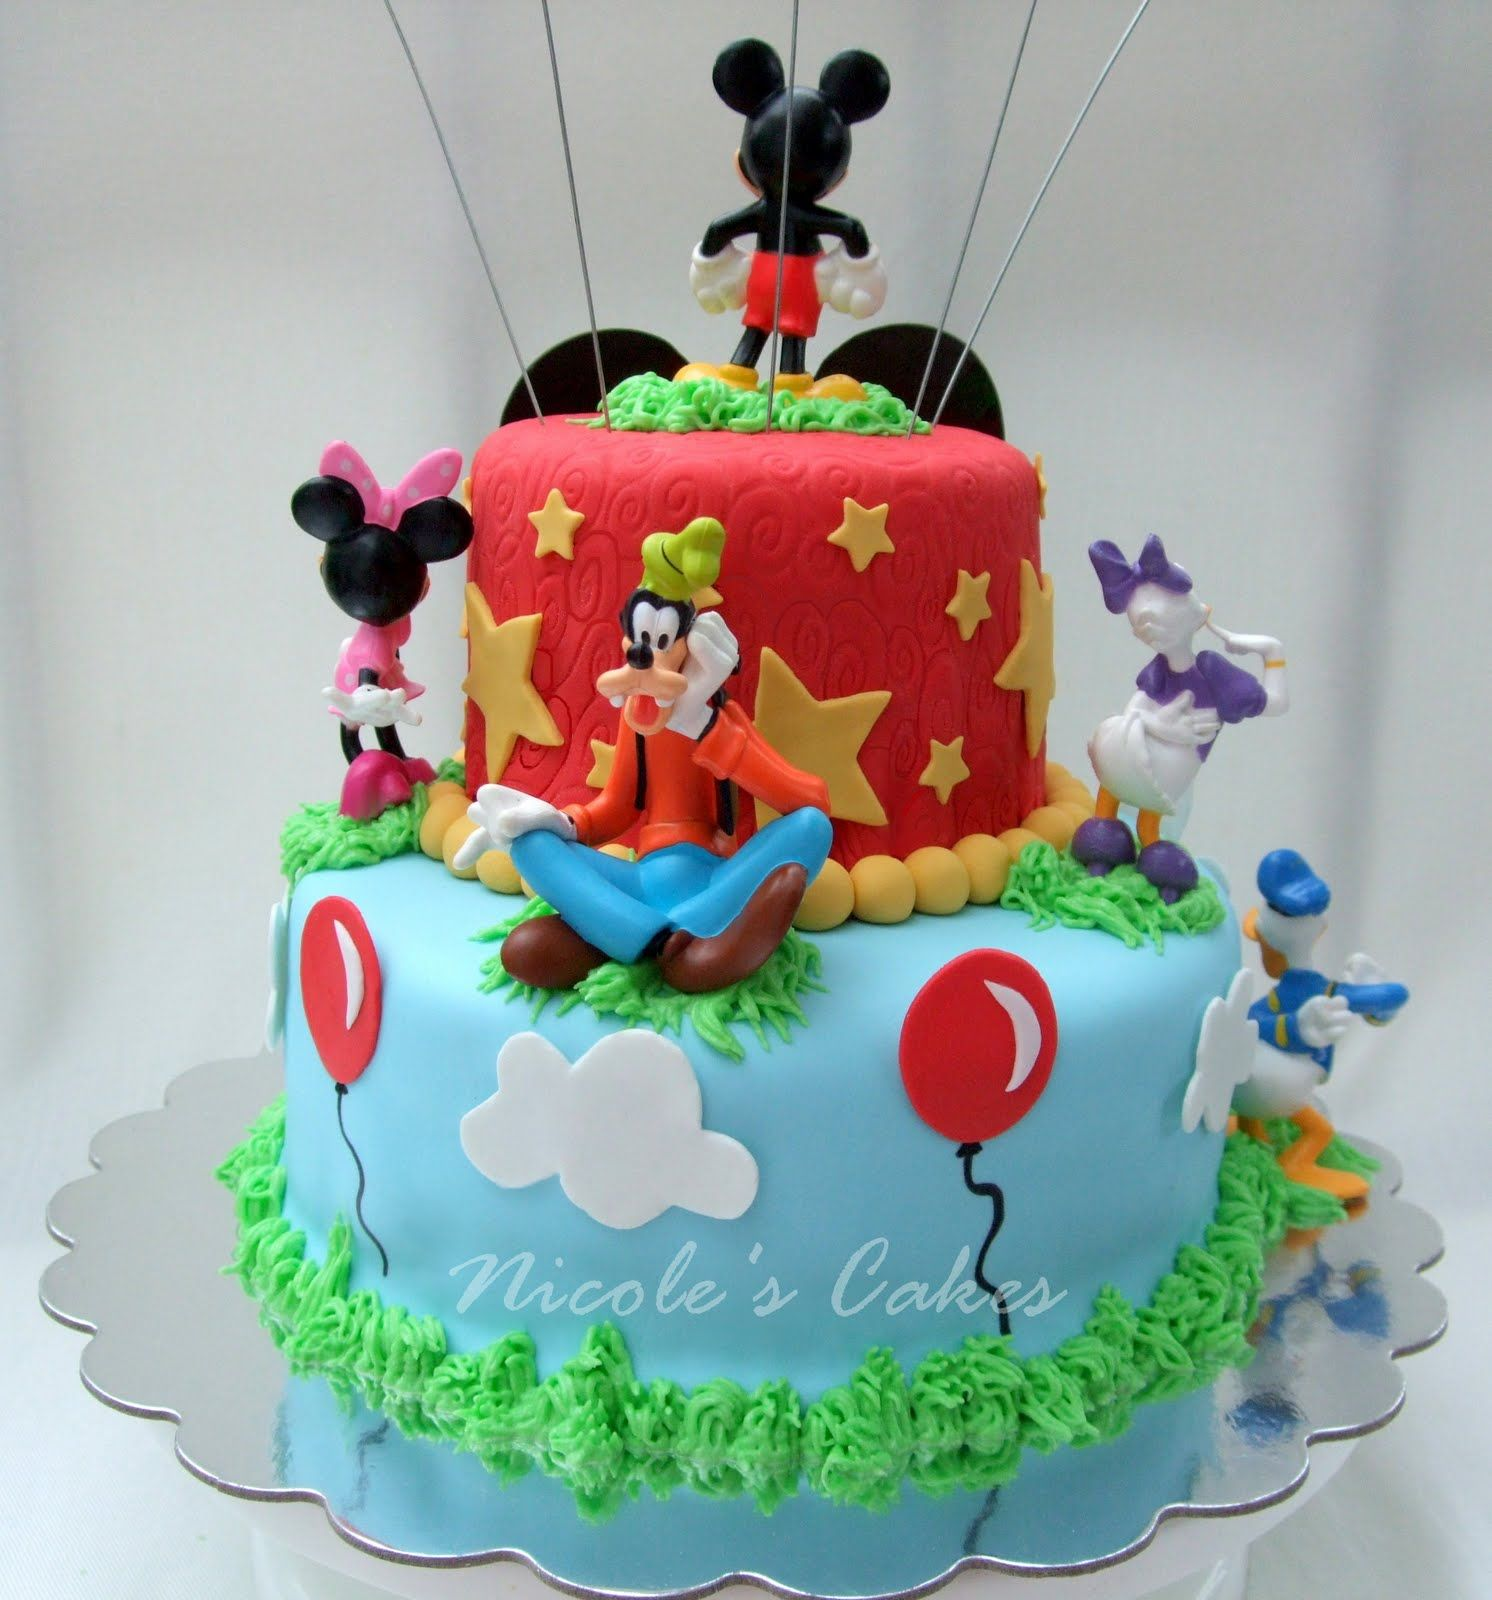 Cake Mickey Mouse Clubhouse Decorations Birthday Party Tips For Stress Free